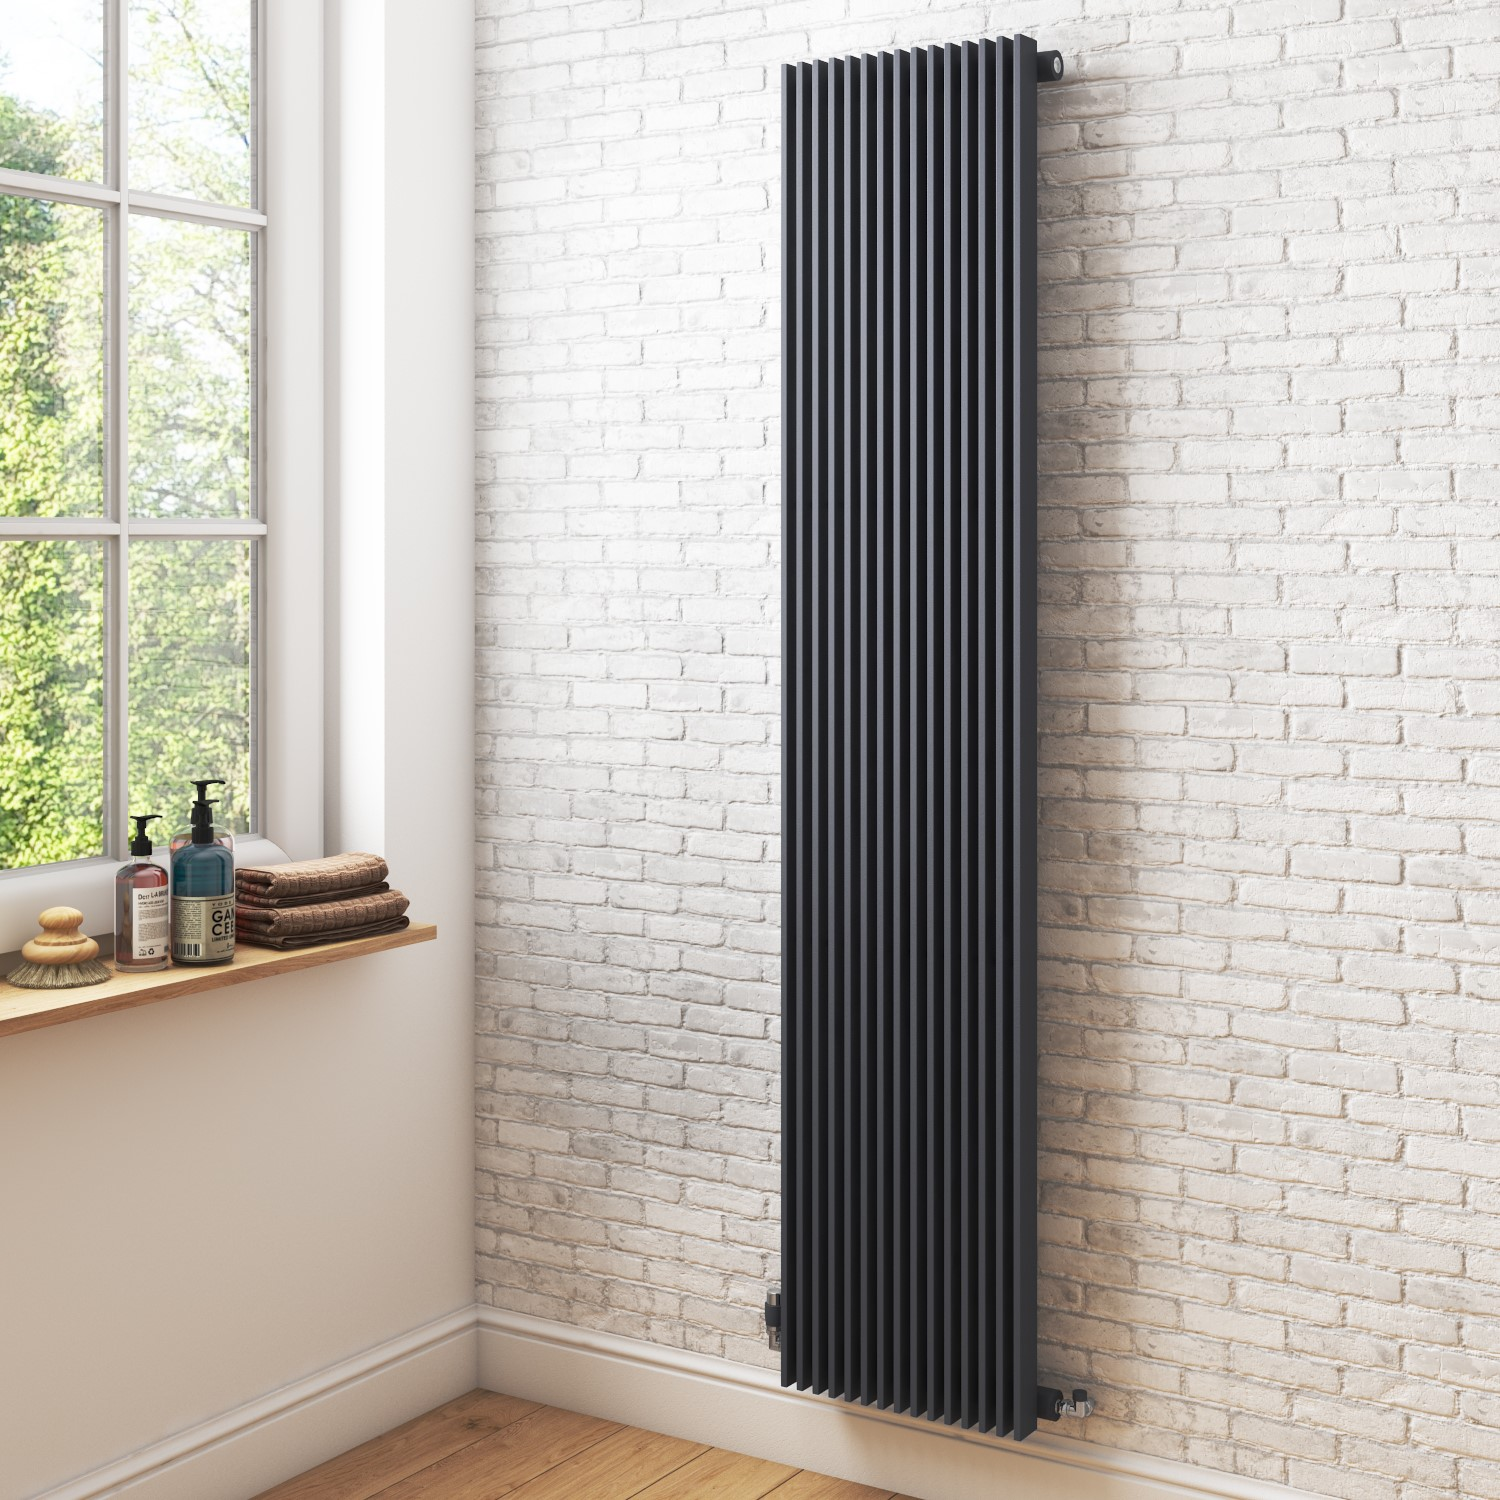 Vertical Anthracite Tall Radiator 1800 X 399mm Furniture123